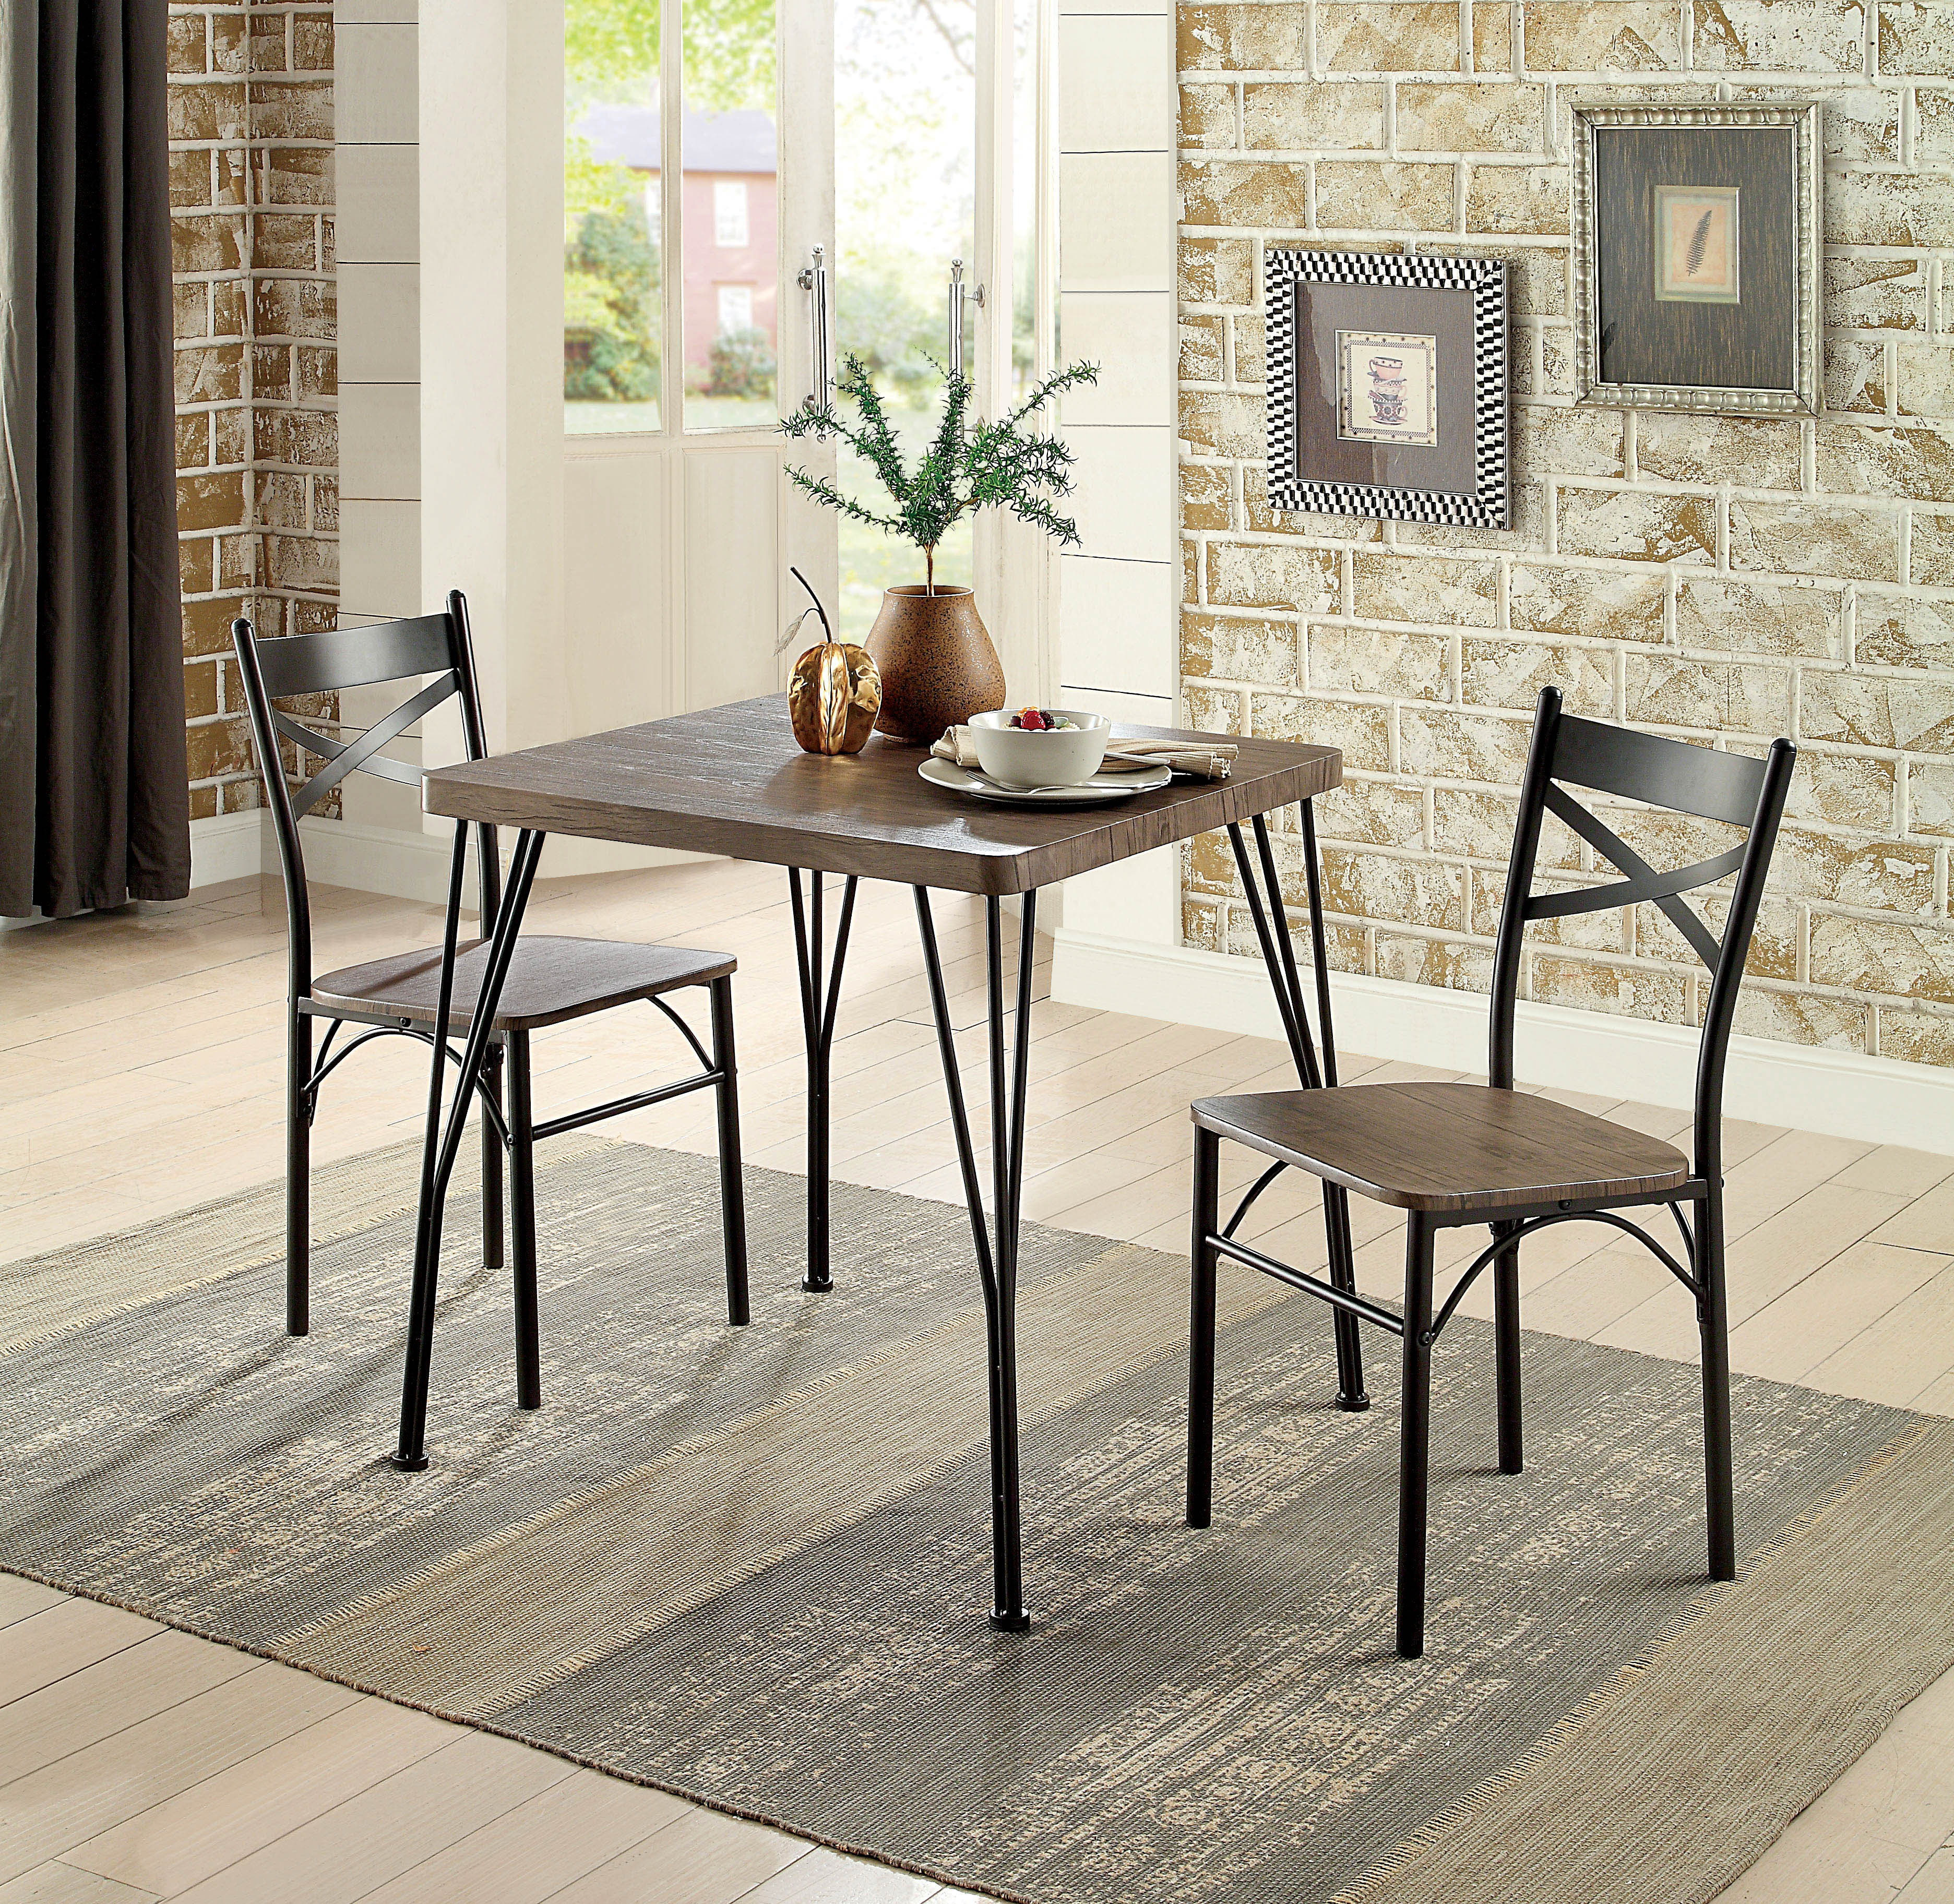 Kinsler 3 Piece Bistro Sets Regarding Most Recently Released Laurel Foundry Modern Farmhouse Guertin 3 Piece Dining Set & Reviews (#4 of 20)